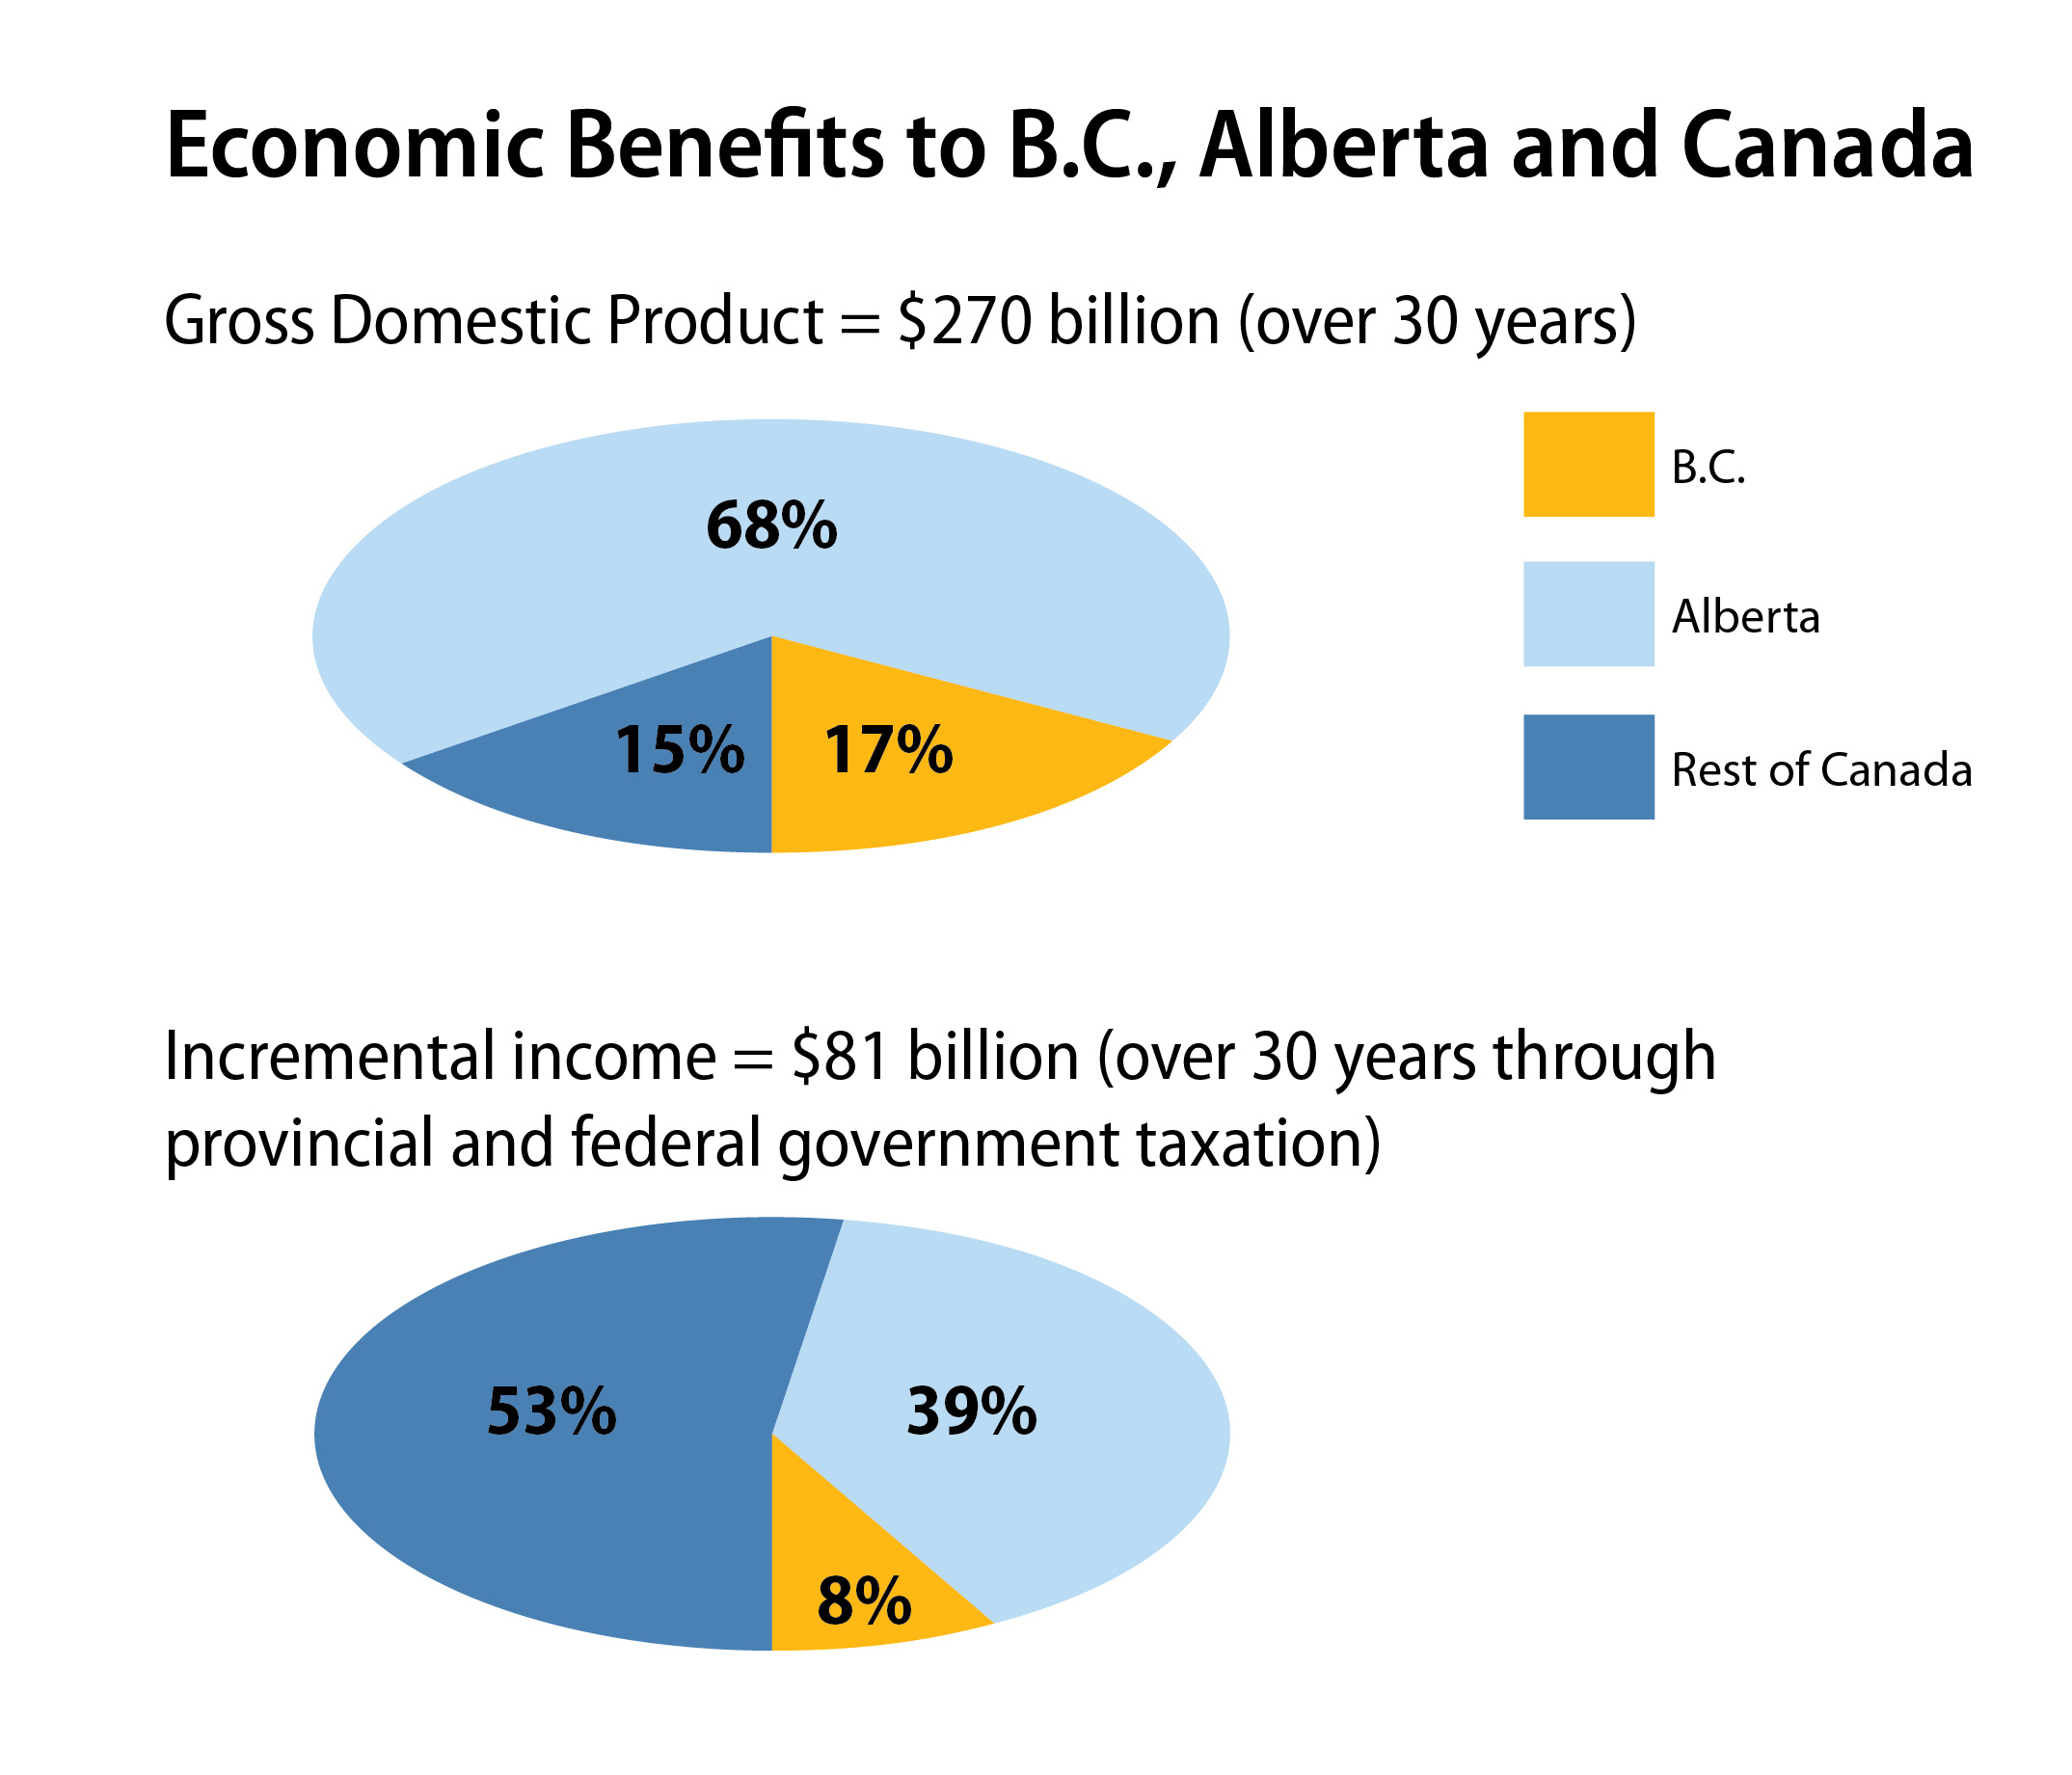 welfare economics and british columbia econ Investing in new social housing, increasing welfare, or implementing universal   wages of lower income british columbians, which would increase economic.